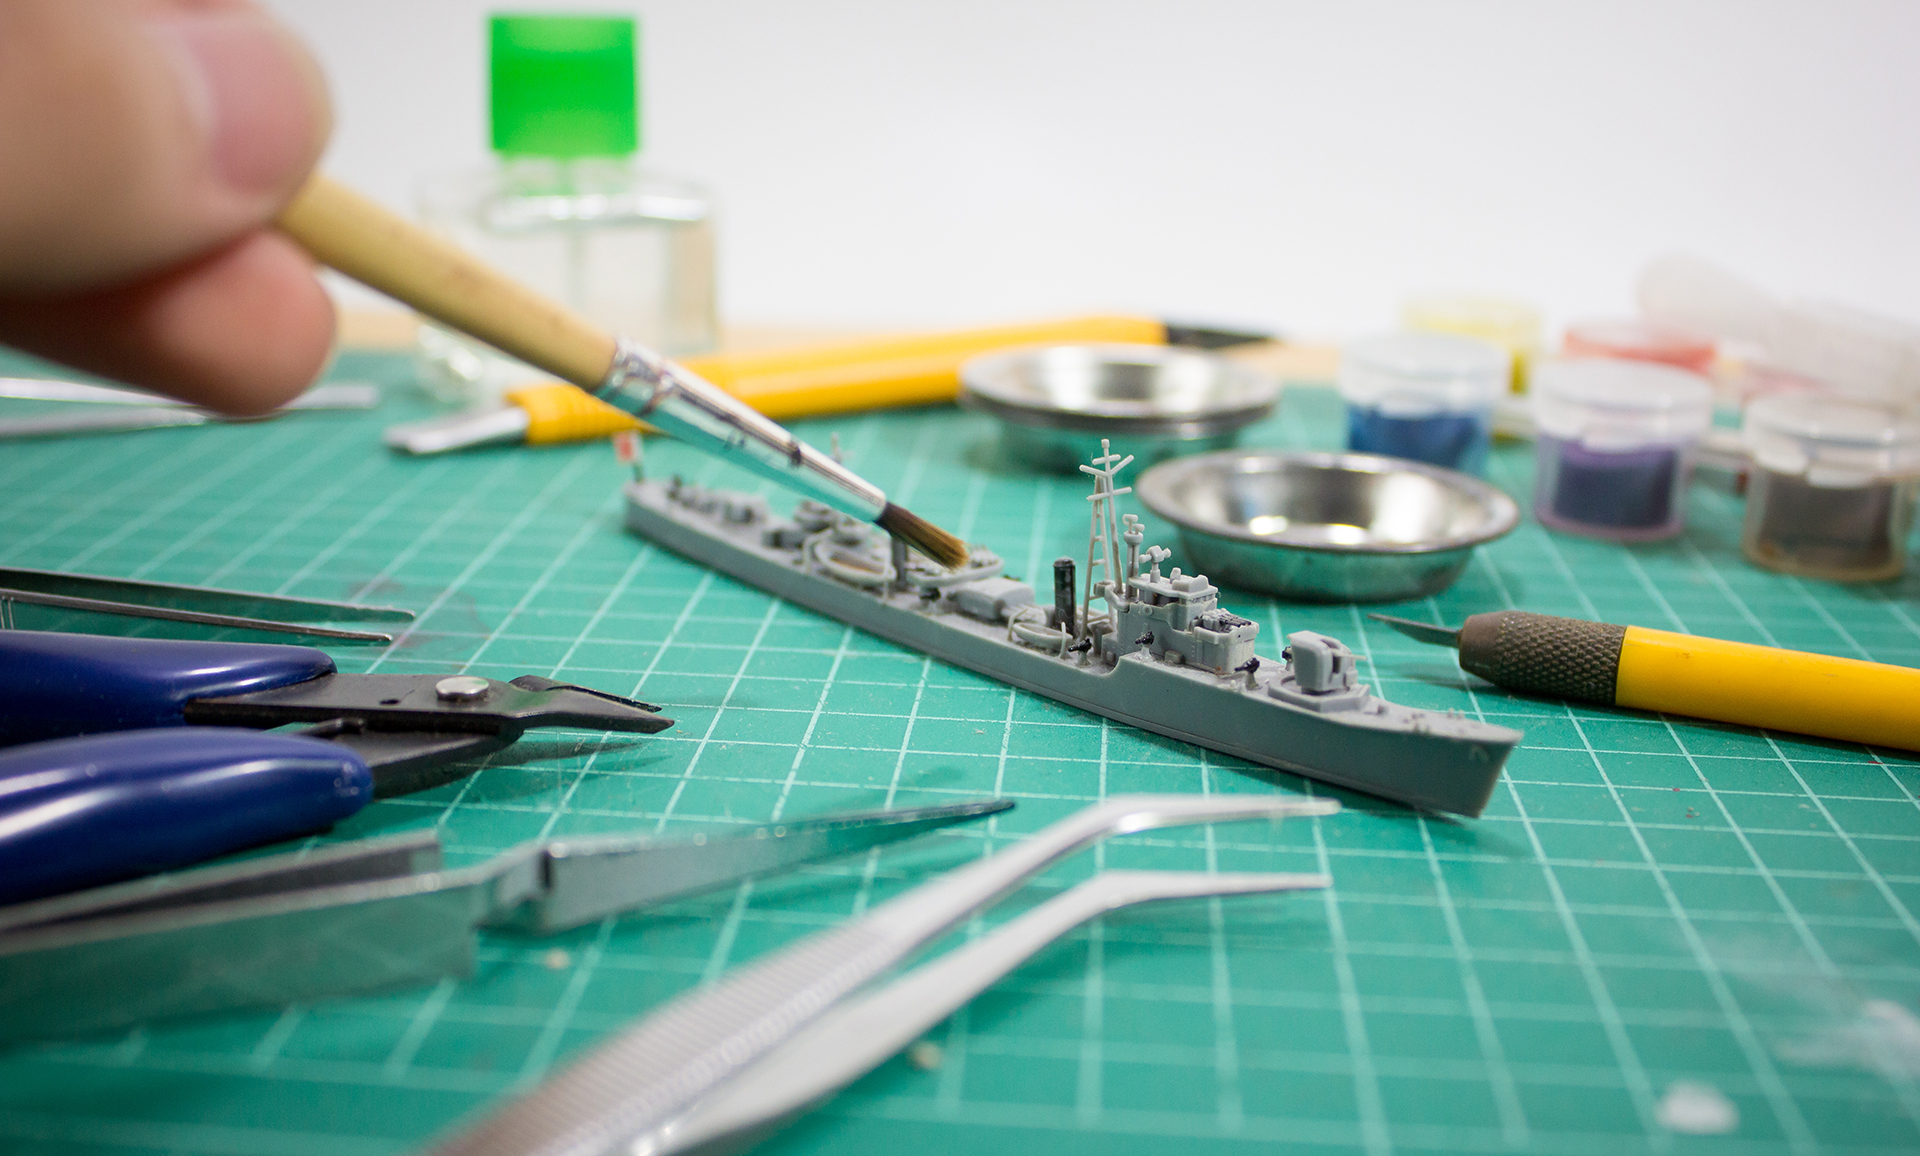 Getting Started in Scale Modeling